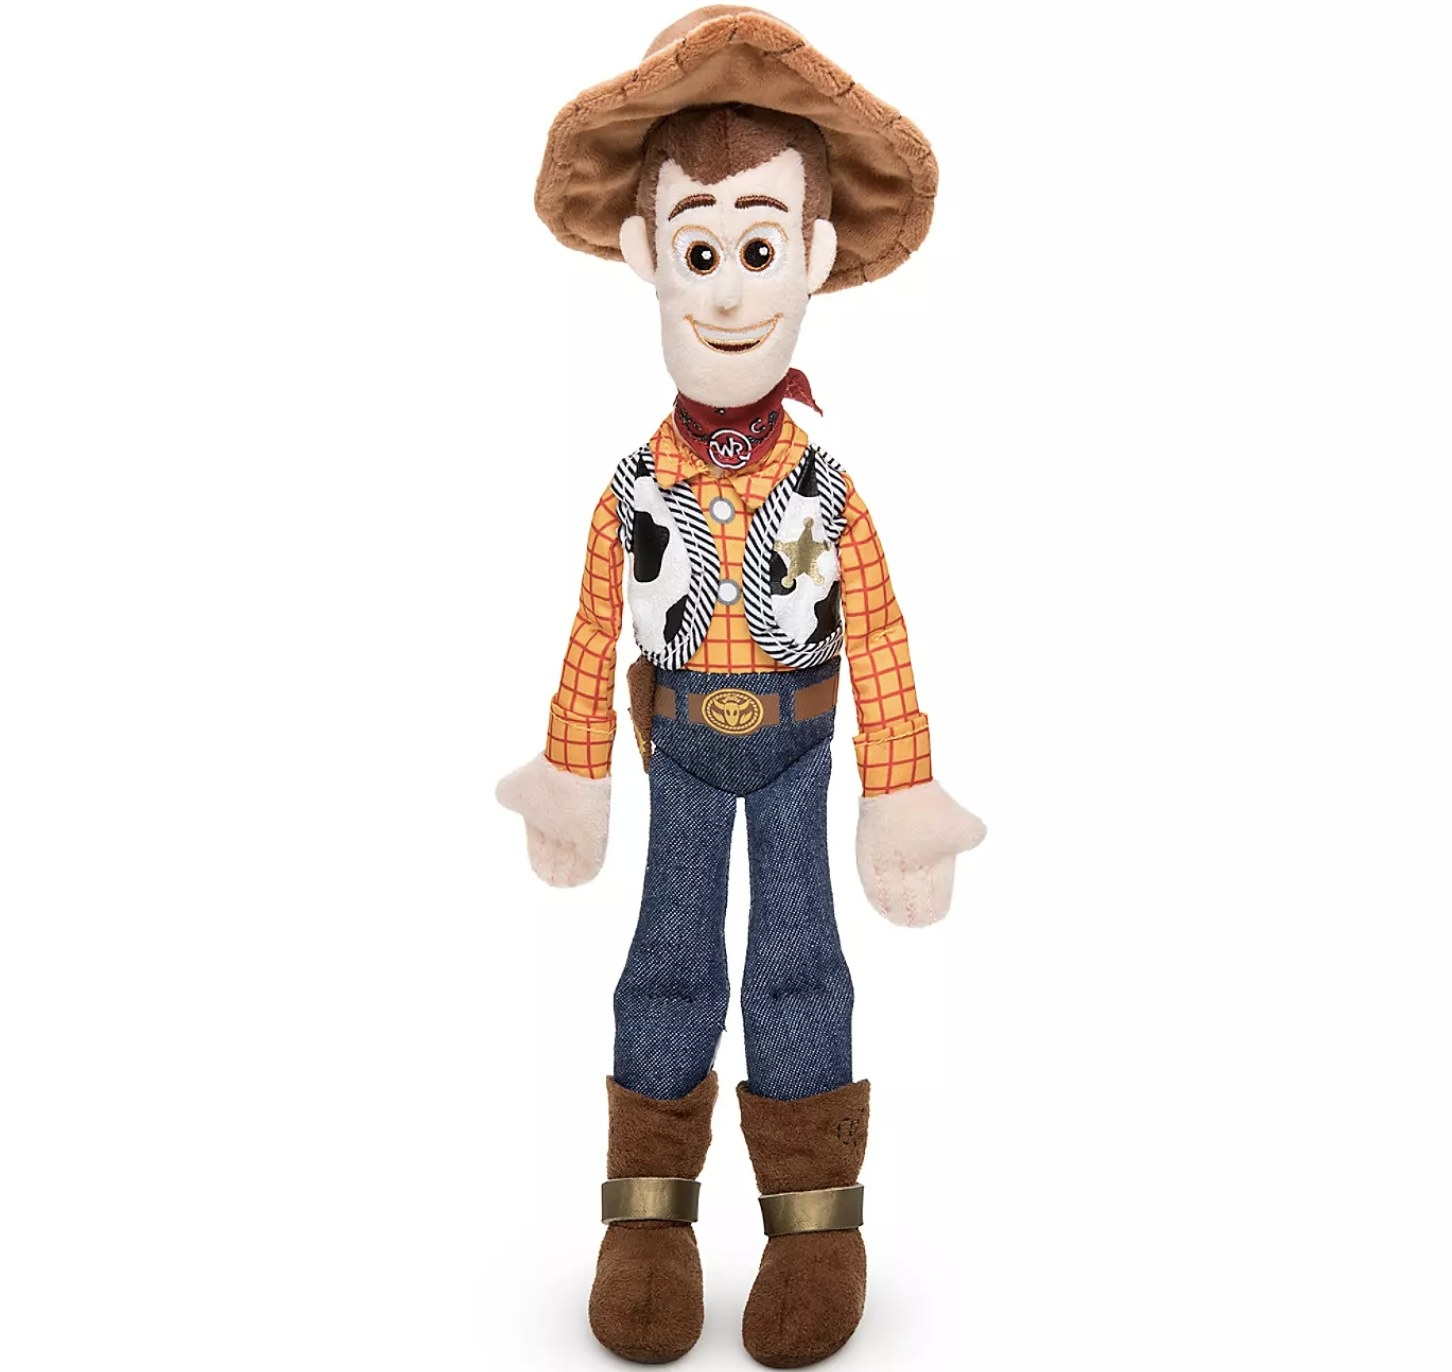 The Woody doll